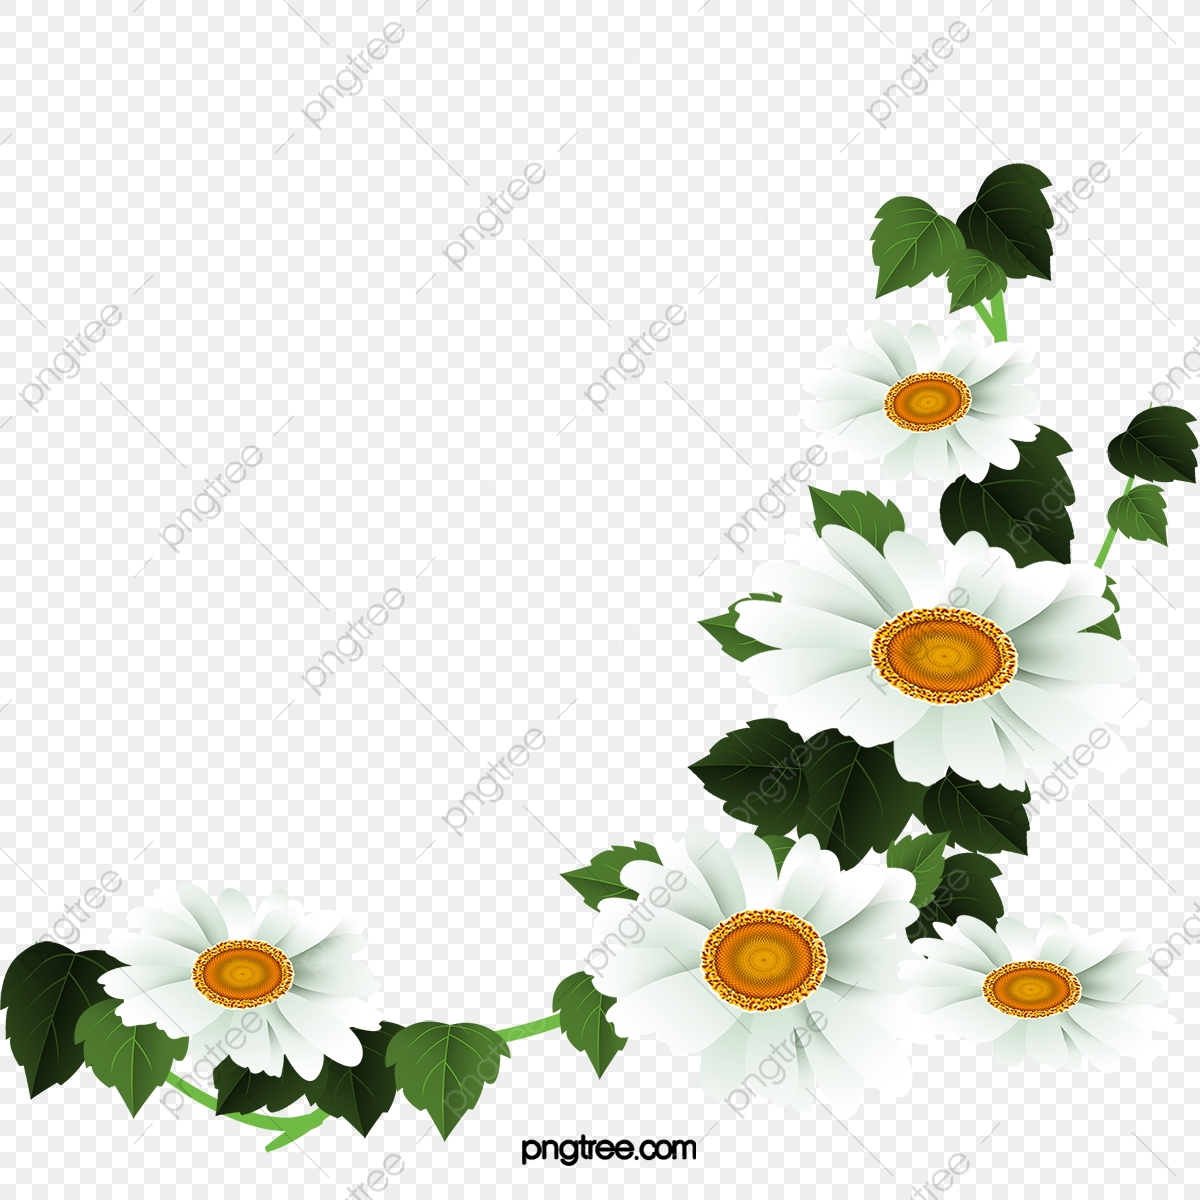 White Daisy Flower Decoration Pattern, Daisy Clipart, Flower Clipart.